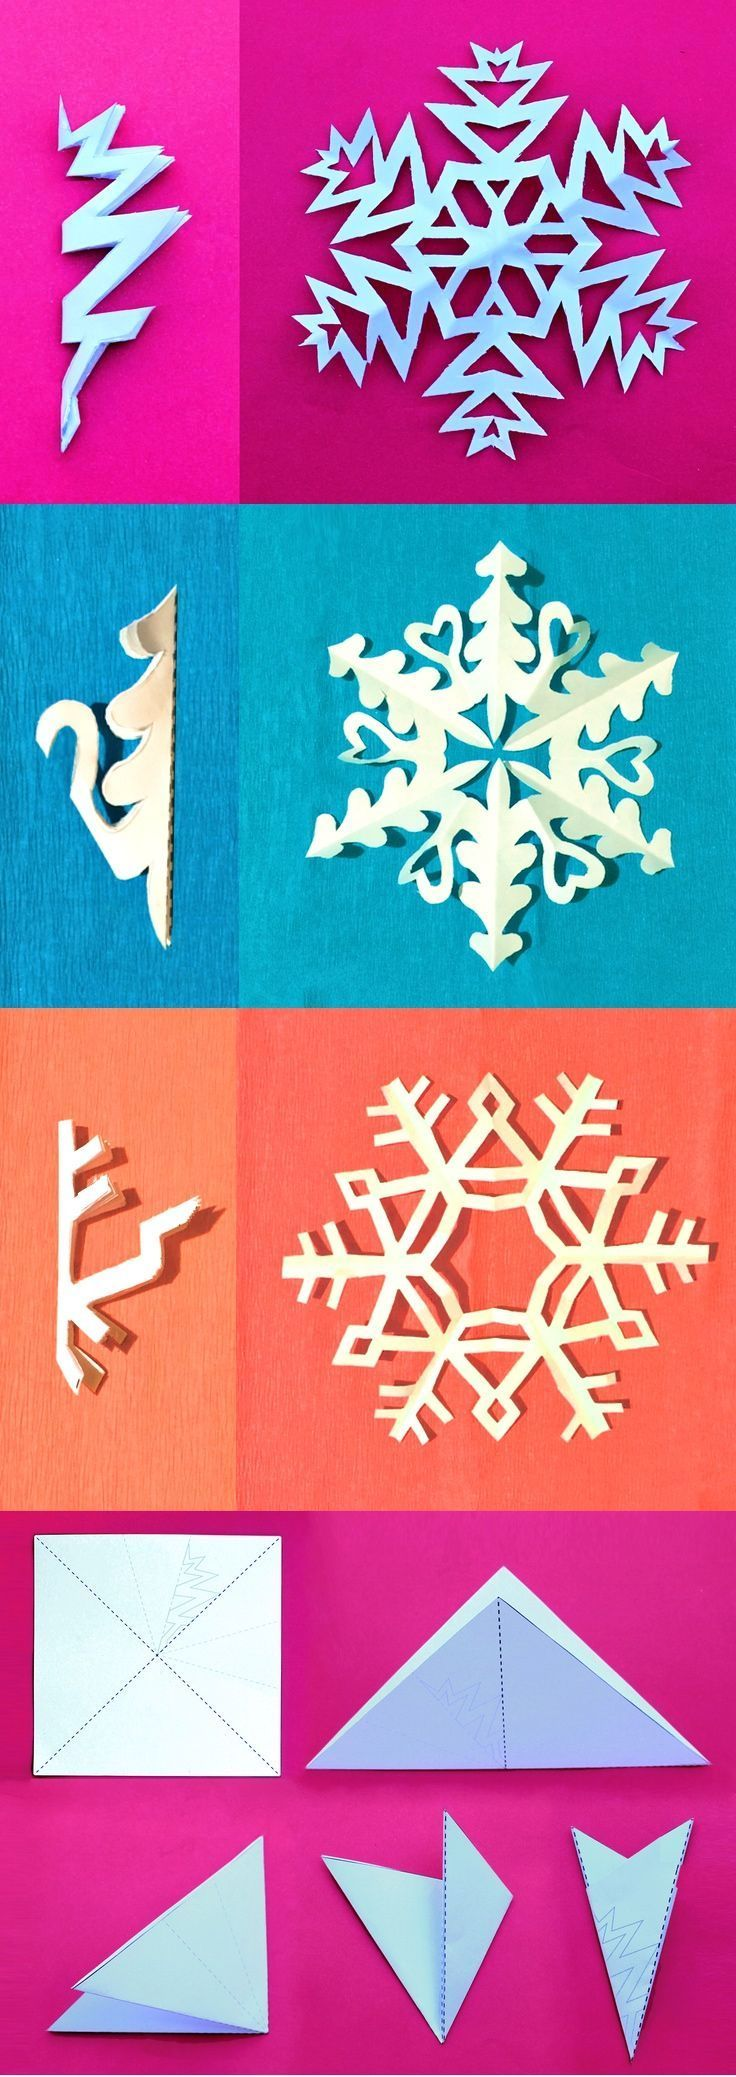 Snowflake templates at http://happythought.co.uk https://happythought.co.uk/product/holiday-craft-activity-printables